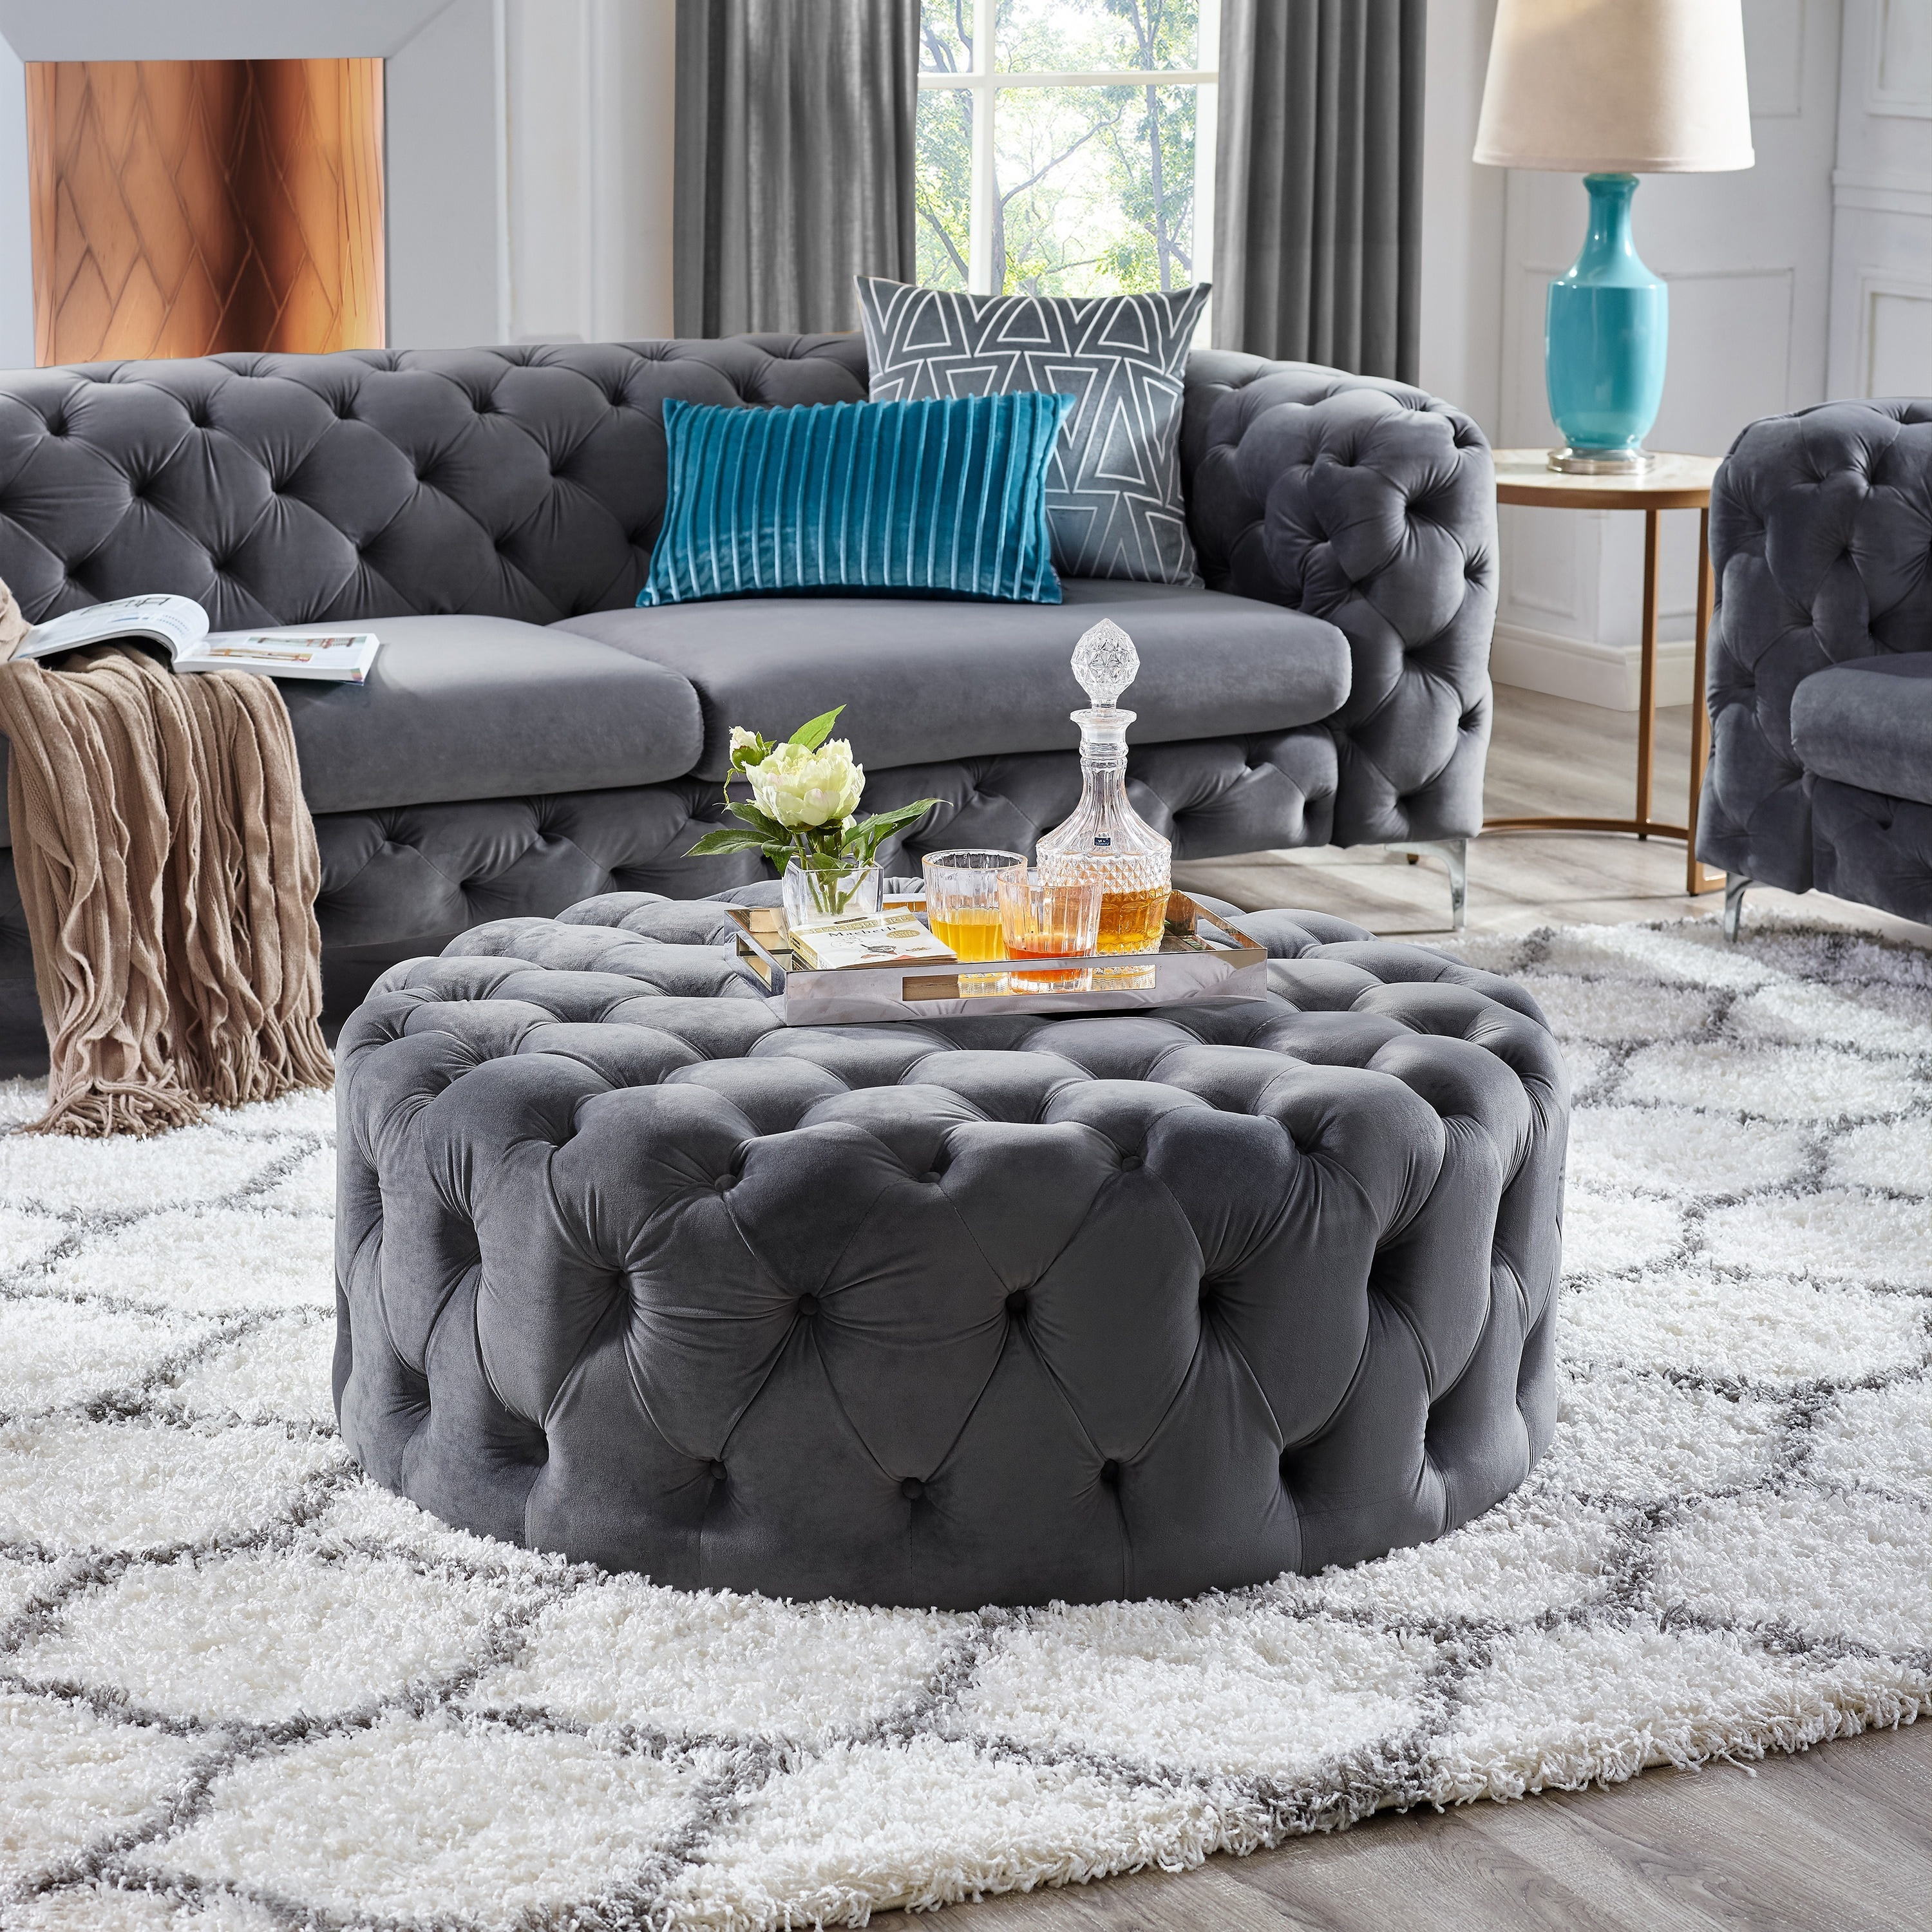 Magnificent Corvus Tufted Velvet Round Chesterfield Ottoman With Casters Caraccident5 Cool Chair Designs And Ideas Caraccident5Info